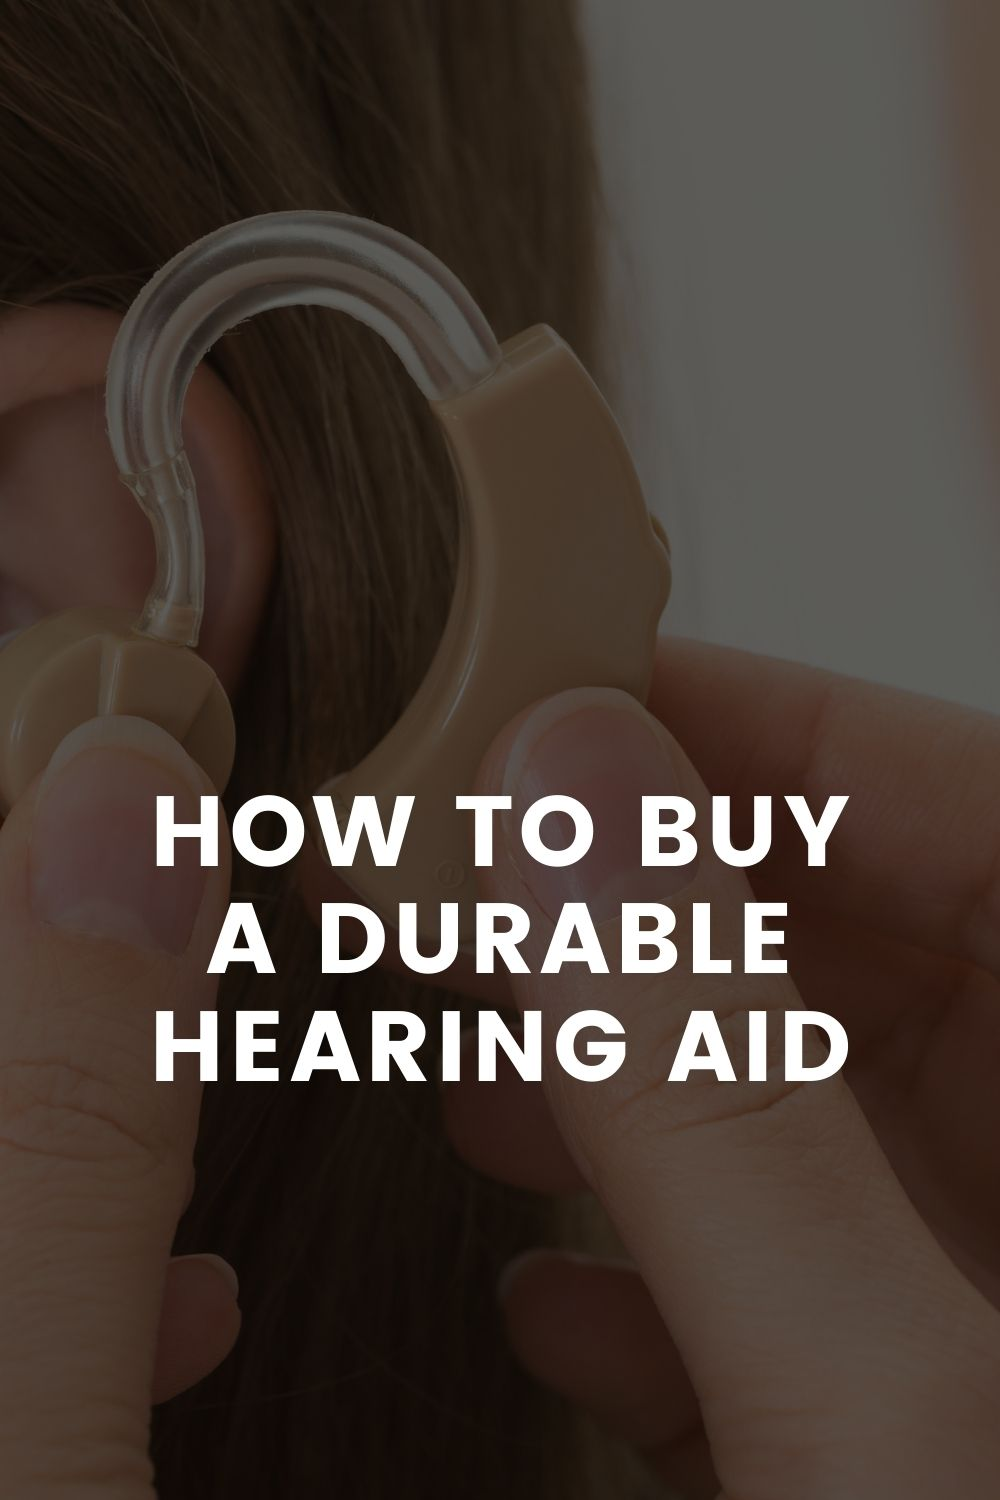 Buy a Durable Hearing Aid